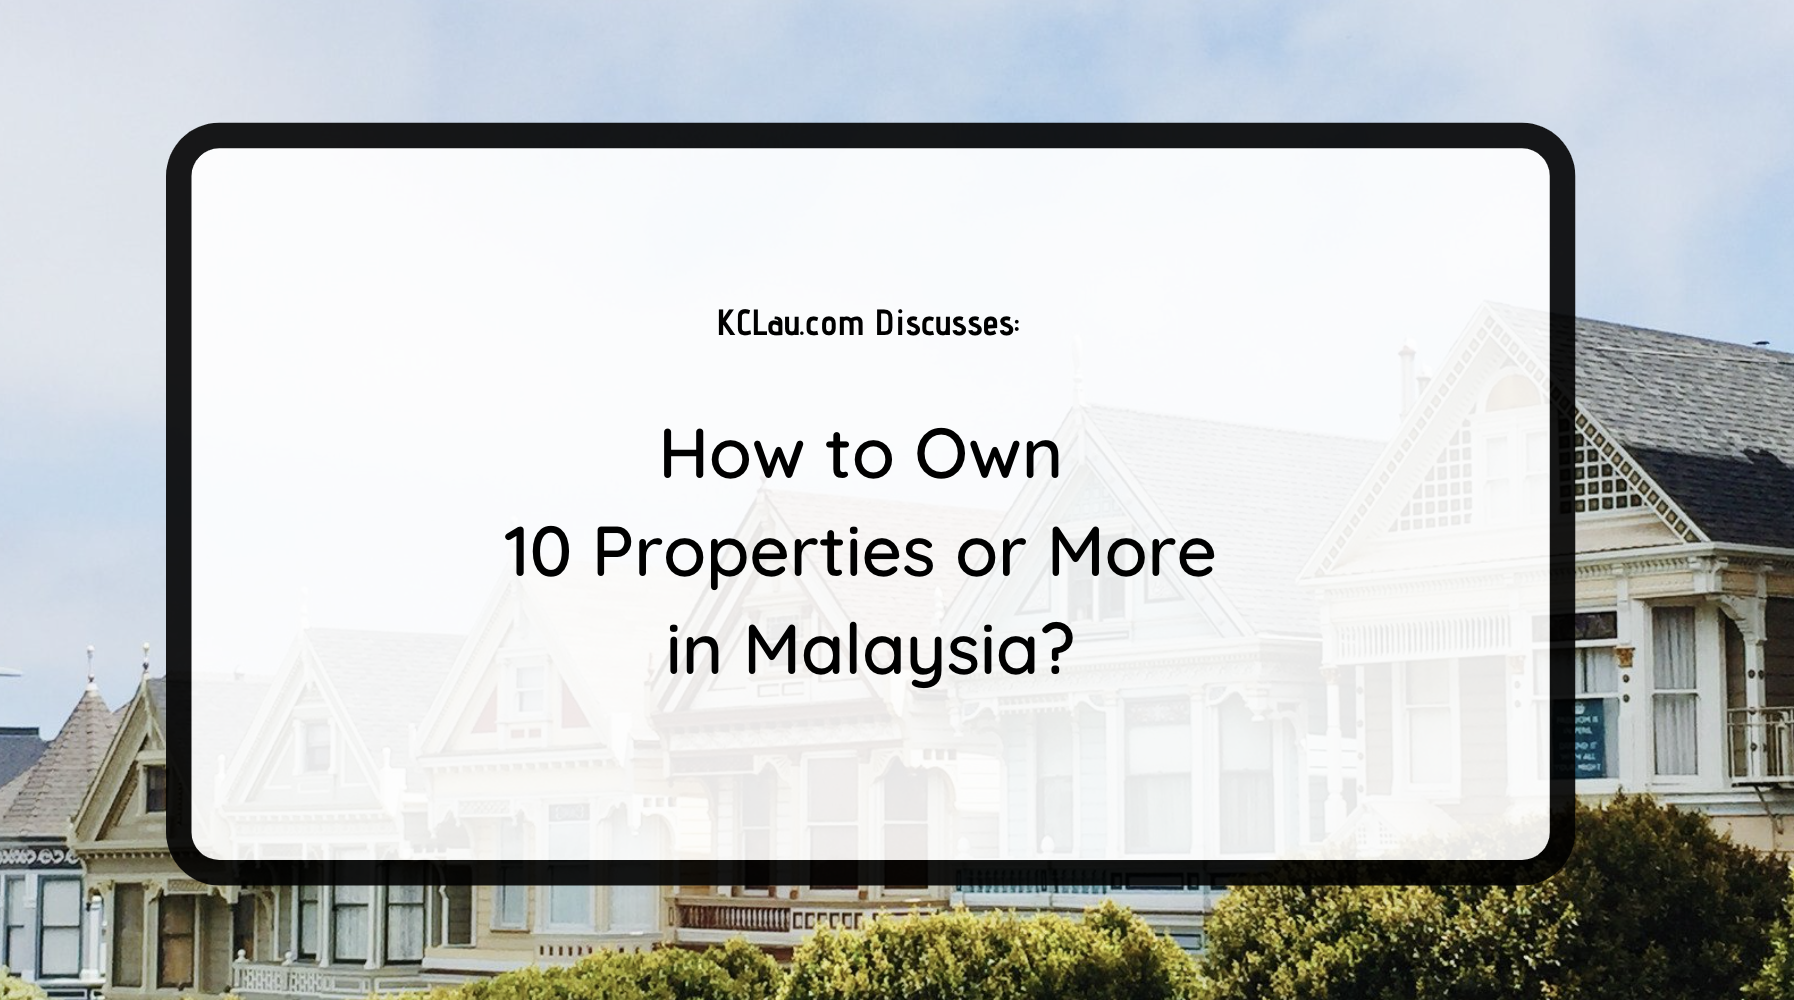 How to Own 10 Properties or More in Malaysia?